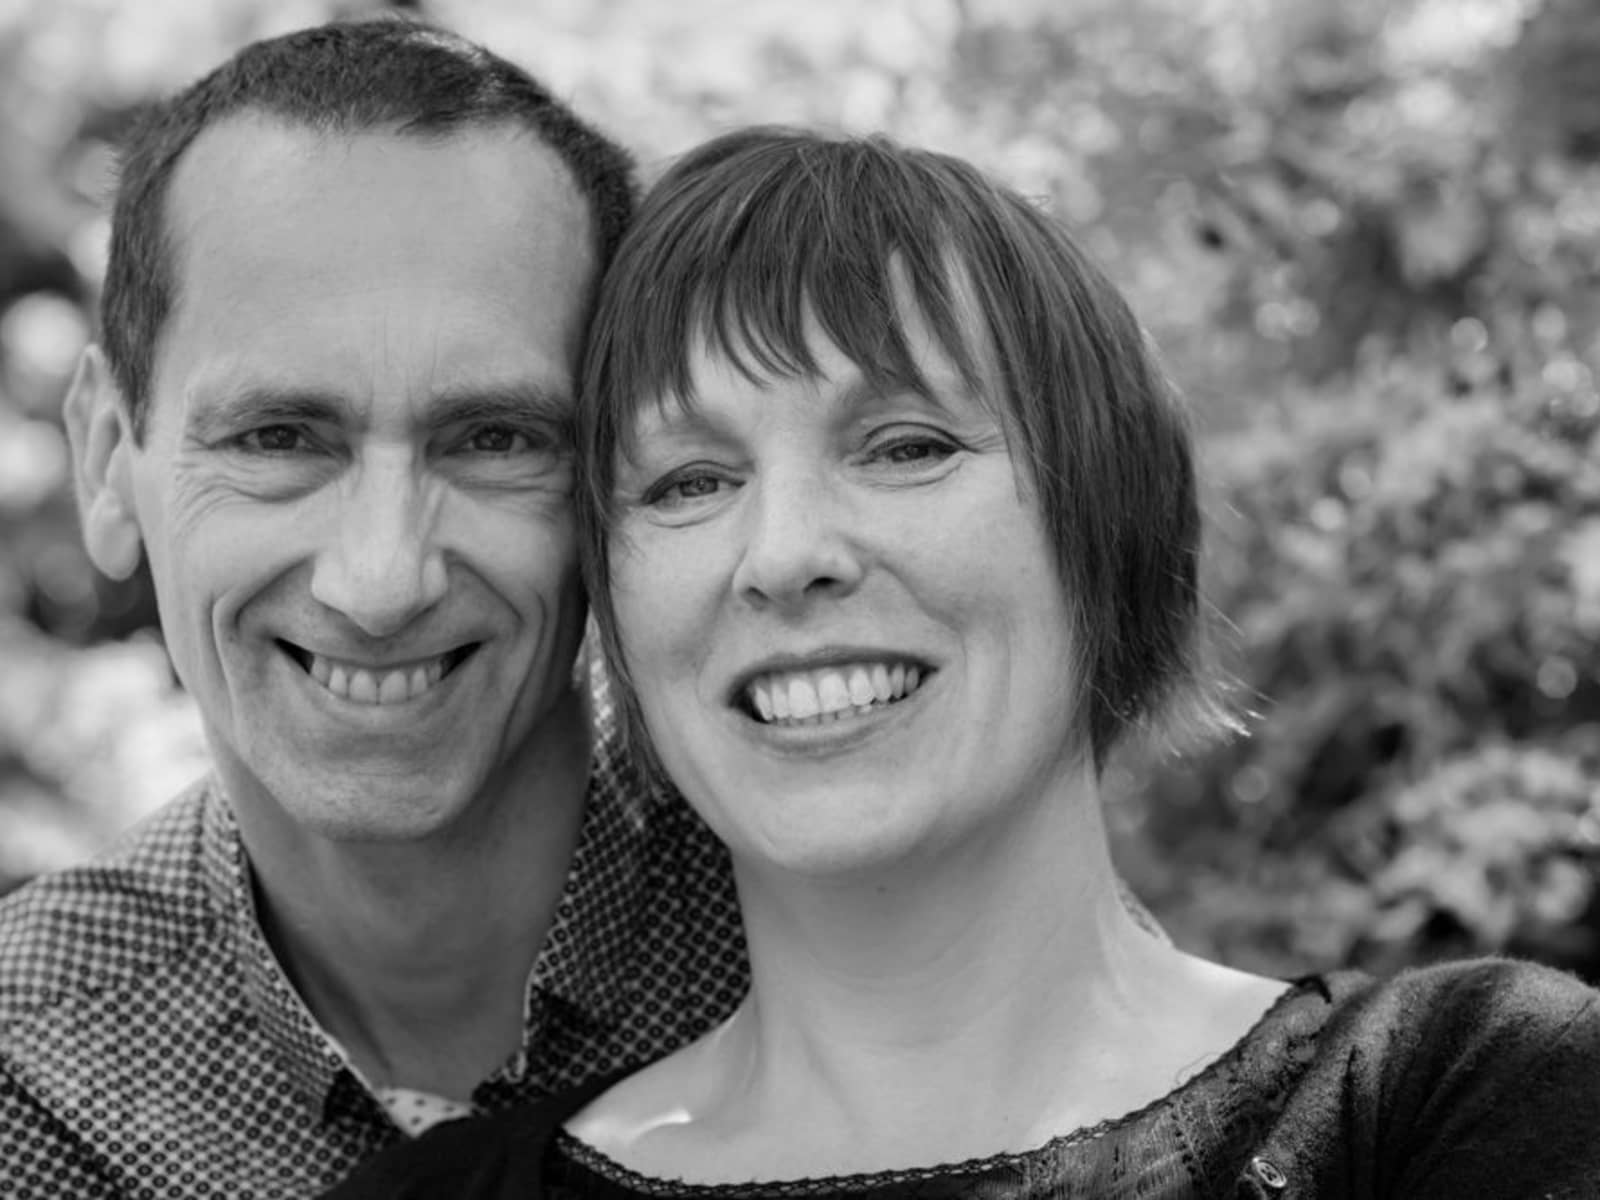 Delphine & Chris from Lincoln, United Kingdom